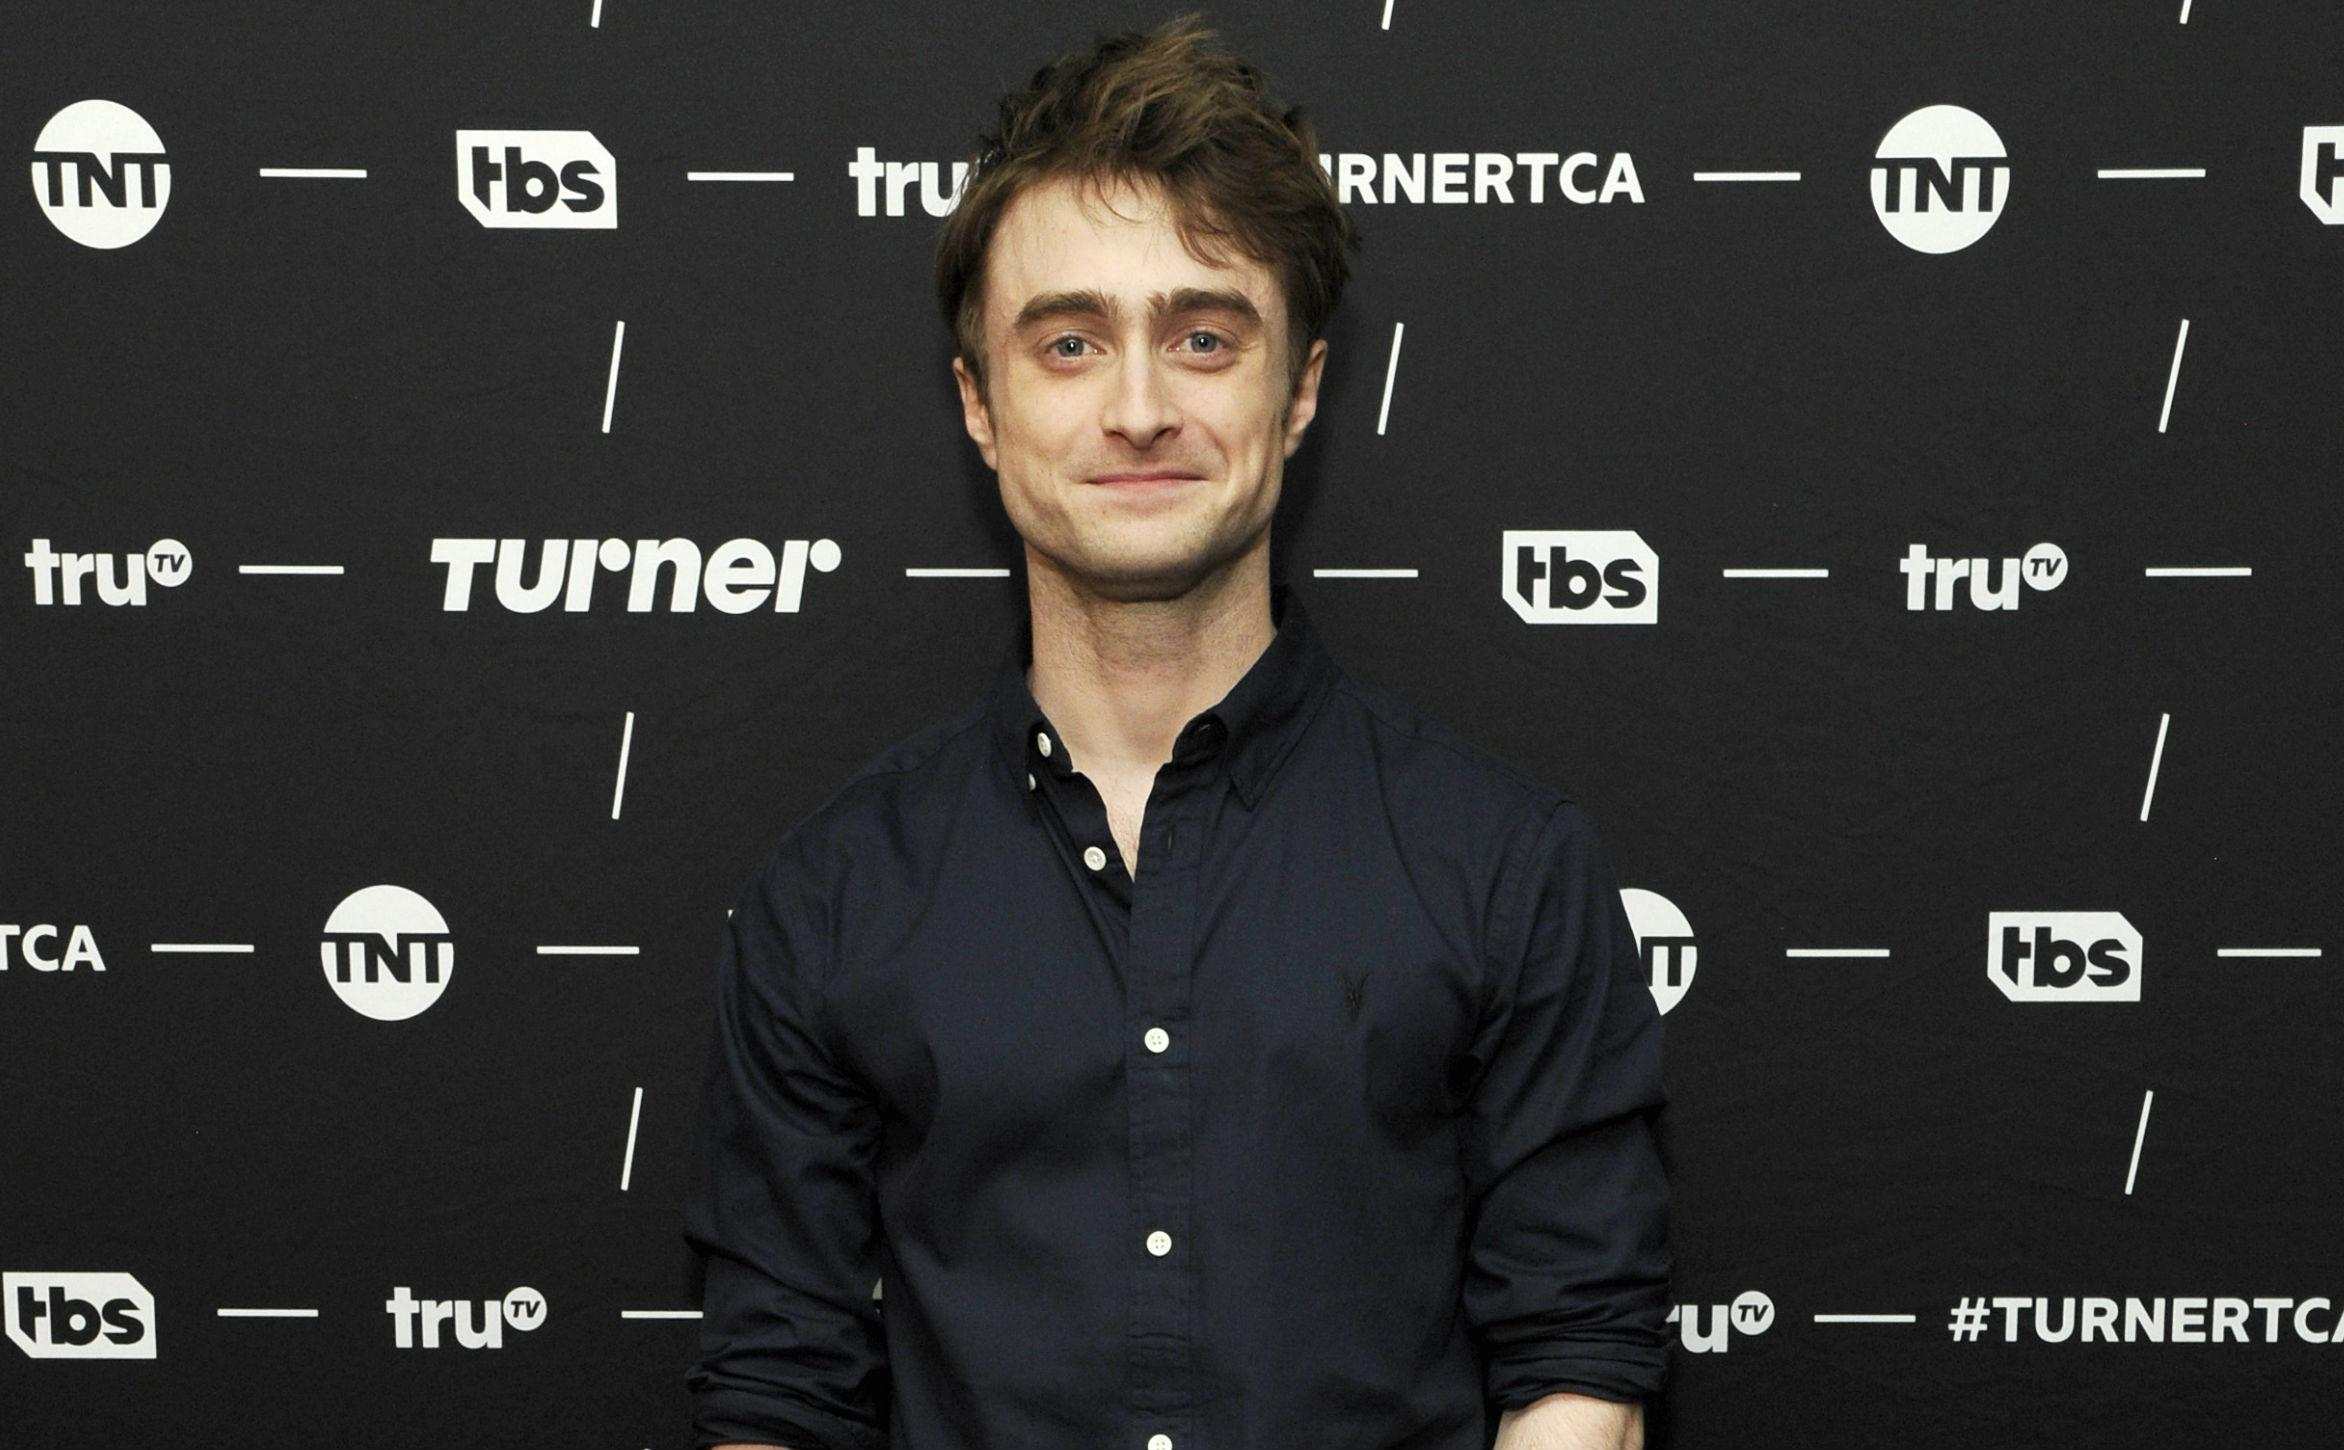 Daniel Radcliffe Reacts To Johnny Depp's Fantastic Beasts Casting Controversy